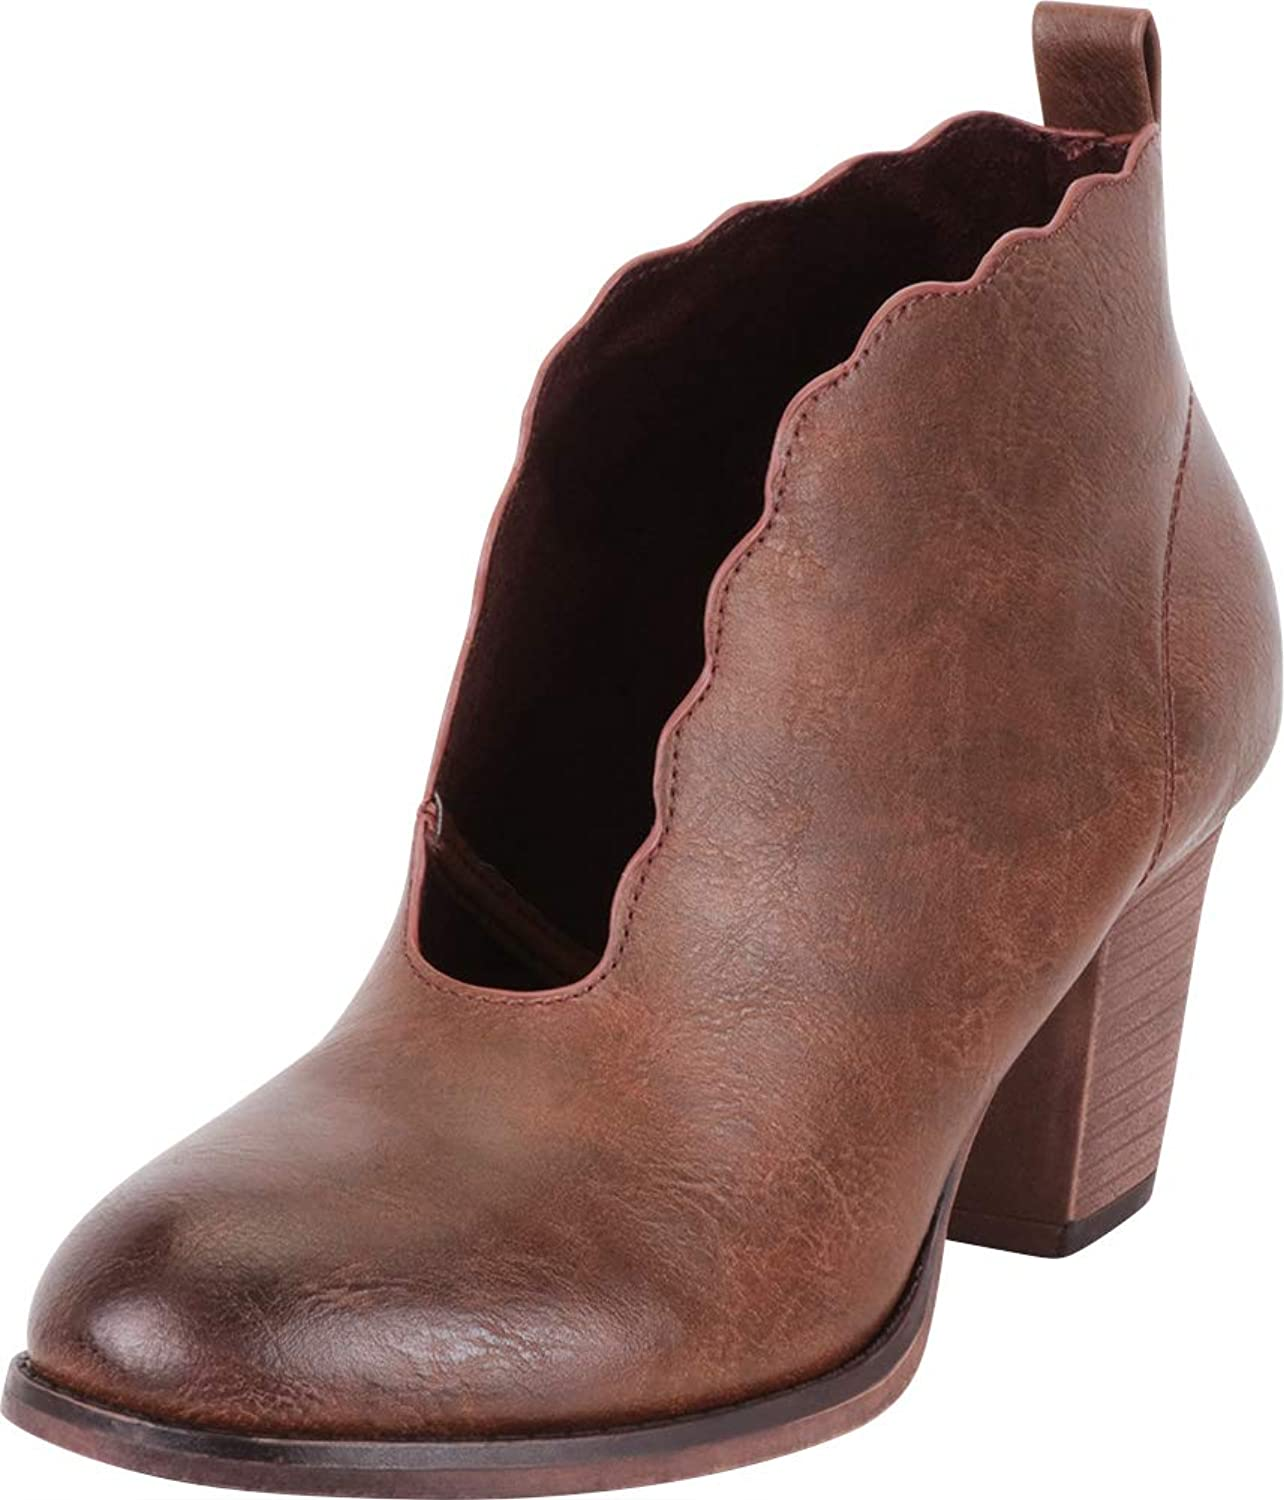 Cambridge Select Women's Distressed Scalloped Front Cutout Stacked High Heel Ankle Bootie